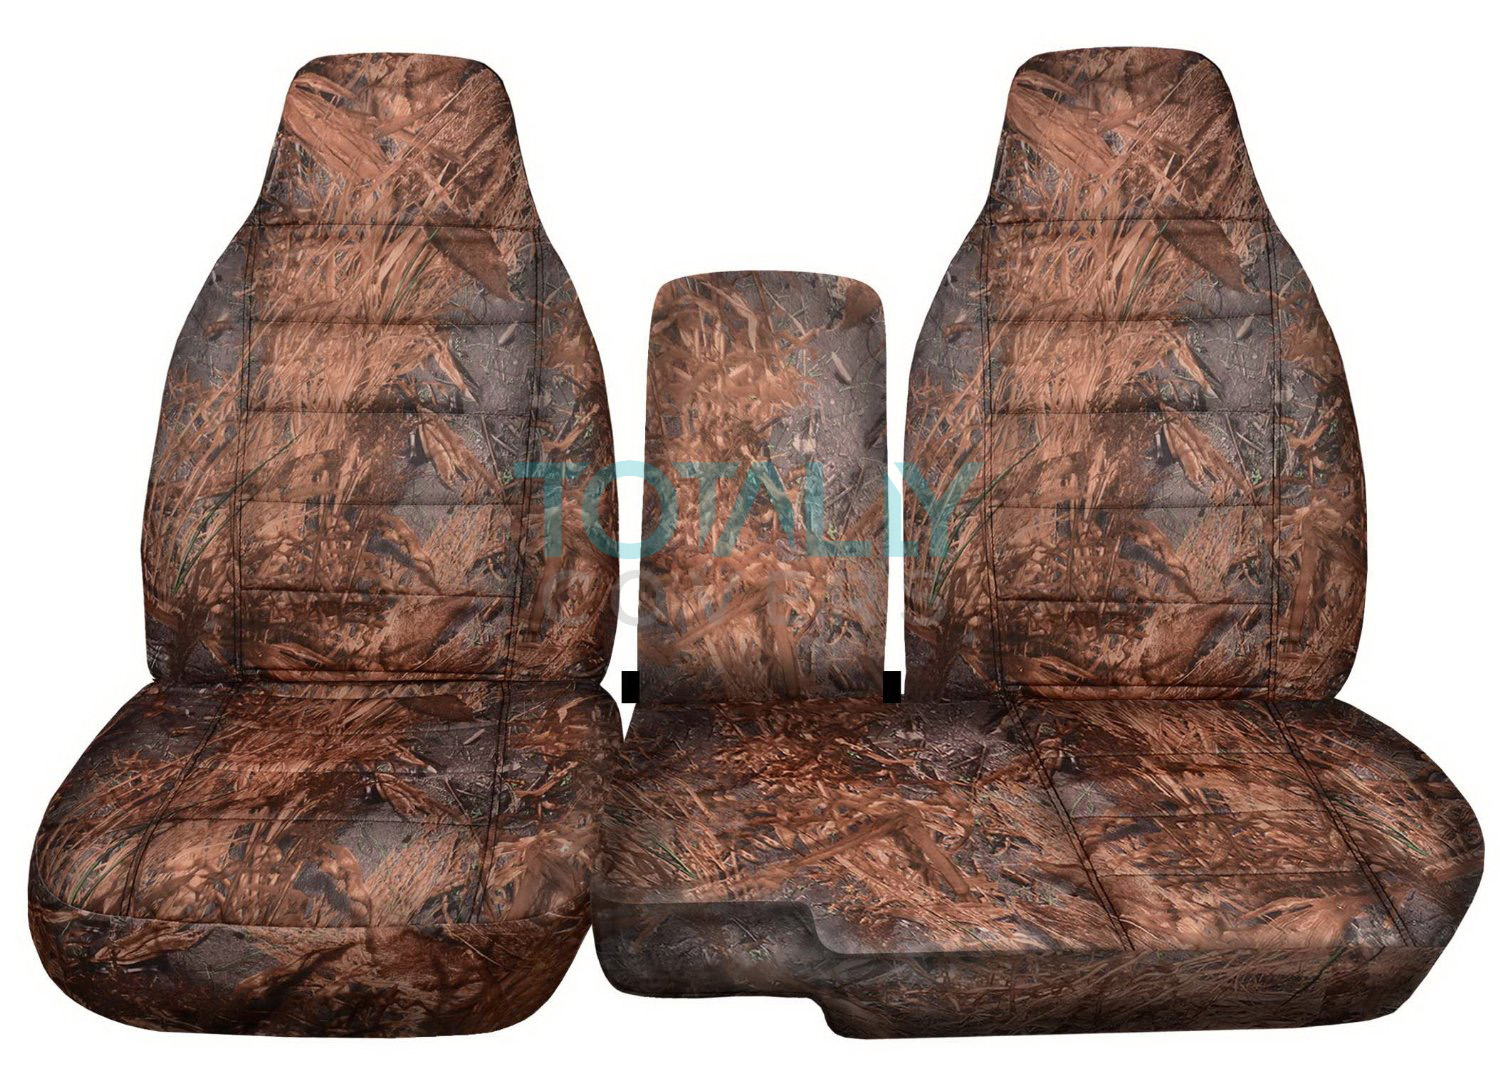 Camouflage Seat Covers For Ford F150 >> Pink camo seat covers for ford f150